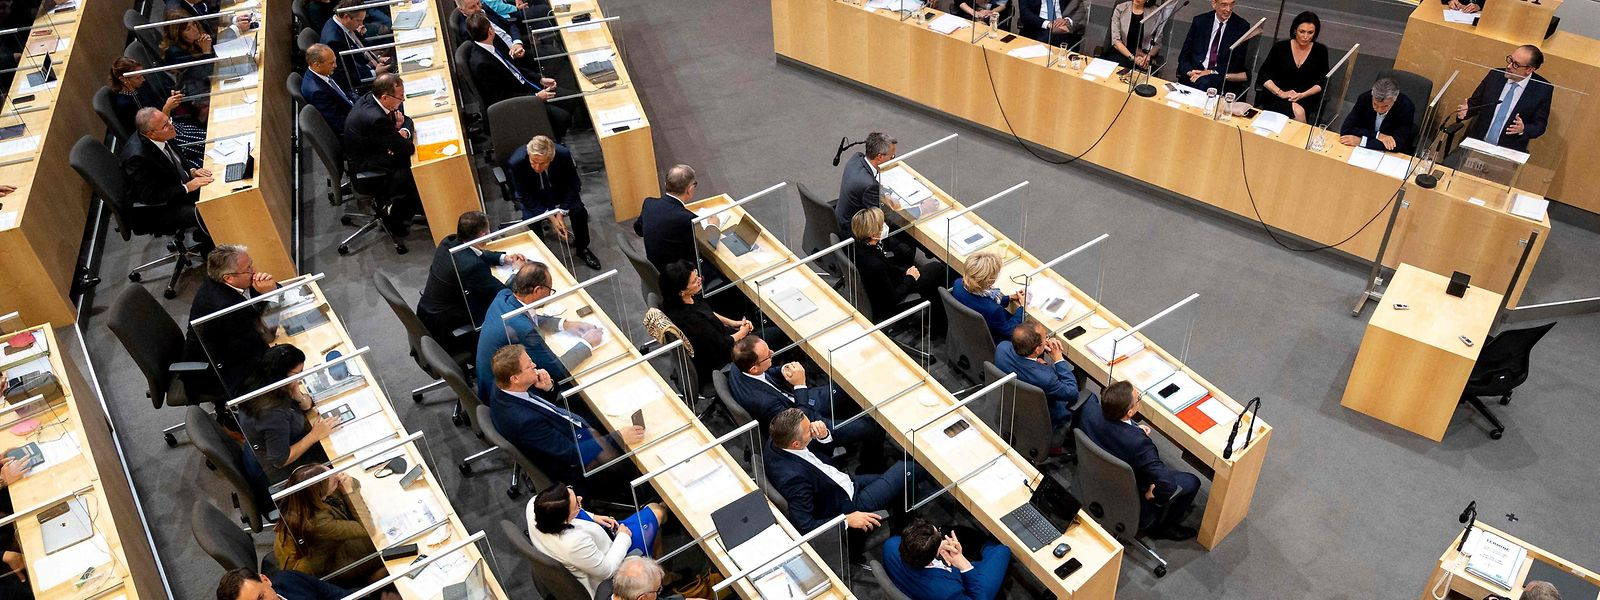 Austria's new Chancellor Alexander Schallenberg (top, R) delivers a speech during an extraordinary session at the Nationalrat parliament in Vienna on October 12, 2021. (Photo by JOE KLAMAR / AFP)